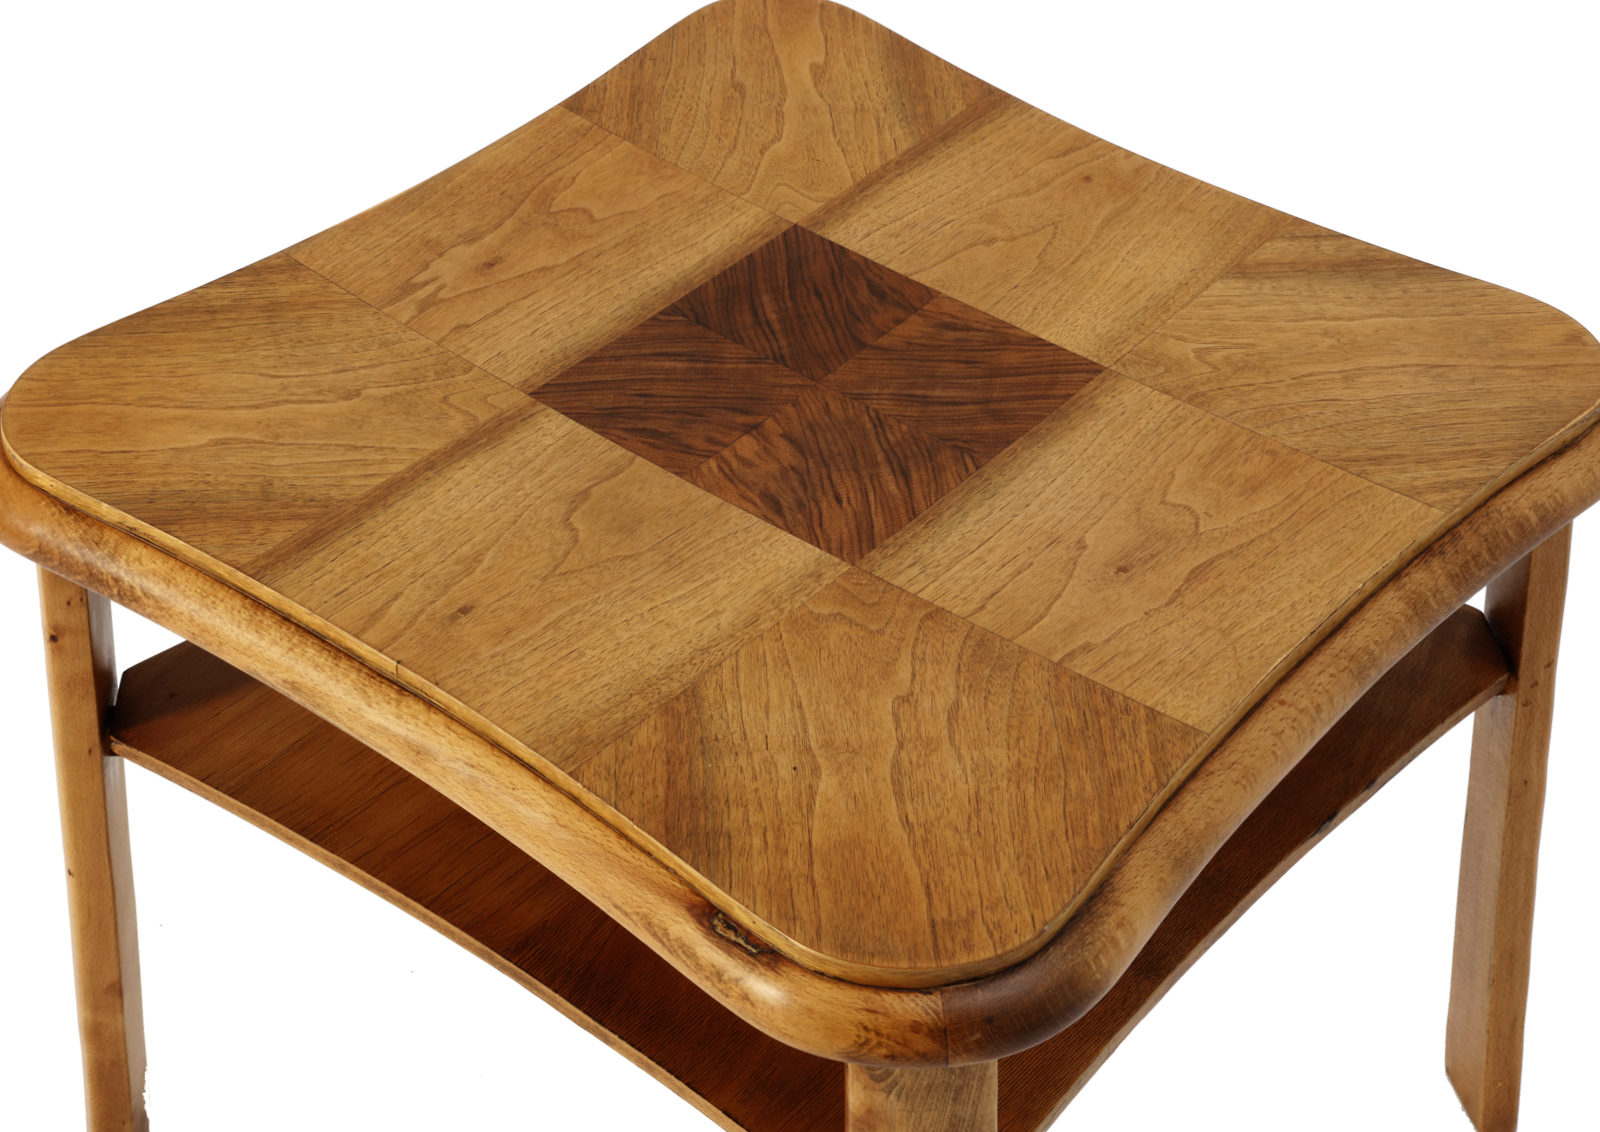 Art deco beech table with walnut intarsia